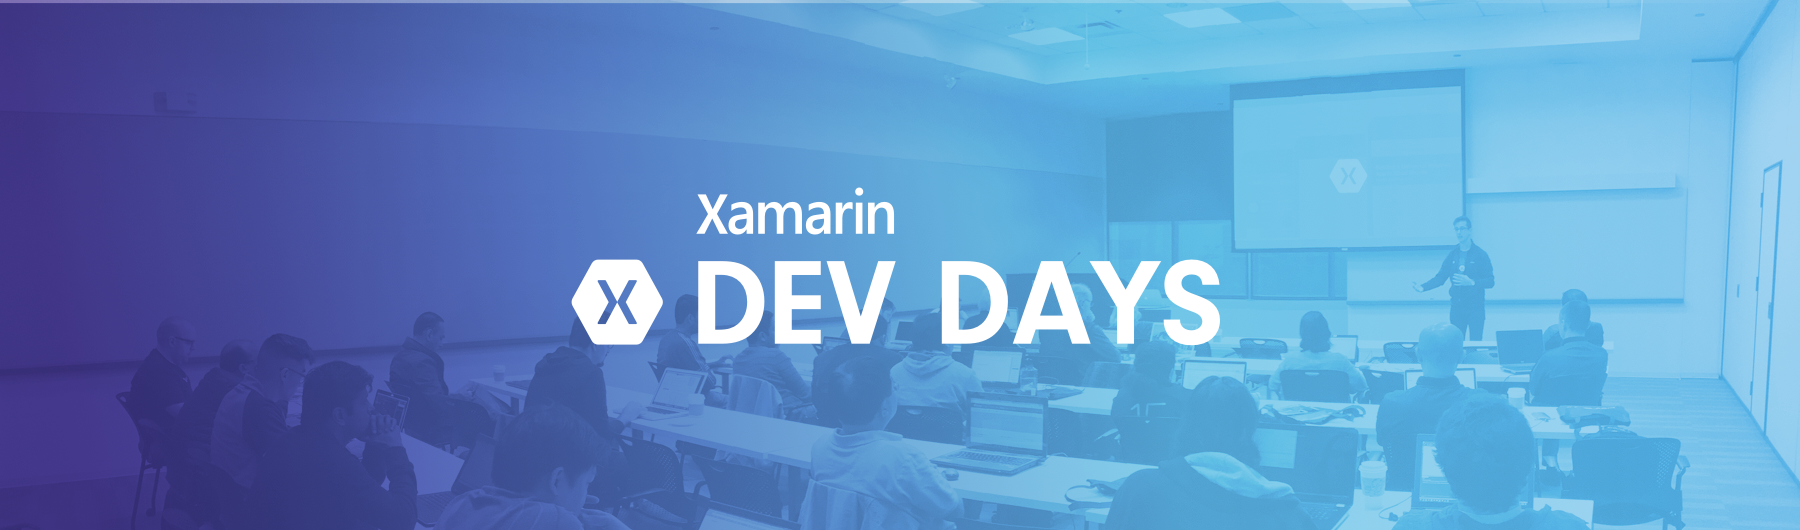 Xamarin Dev Days - Frankfurt